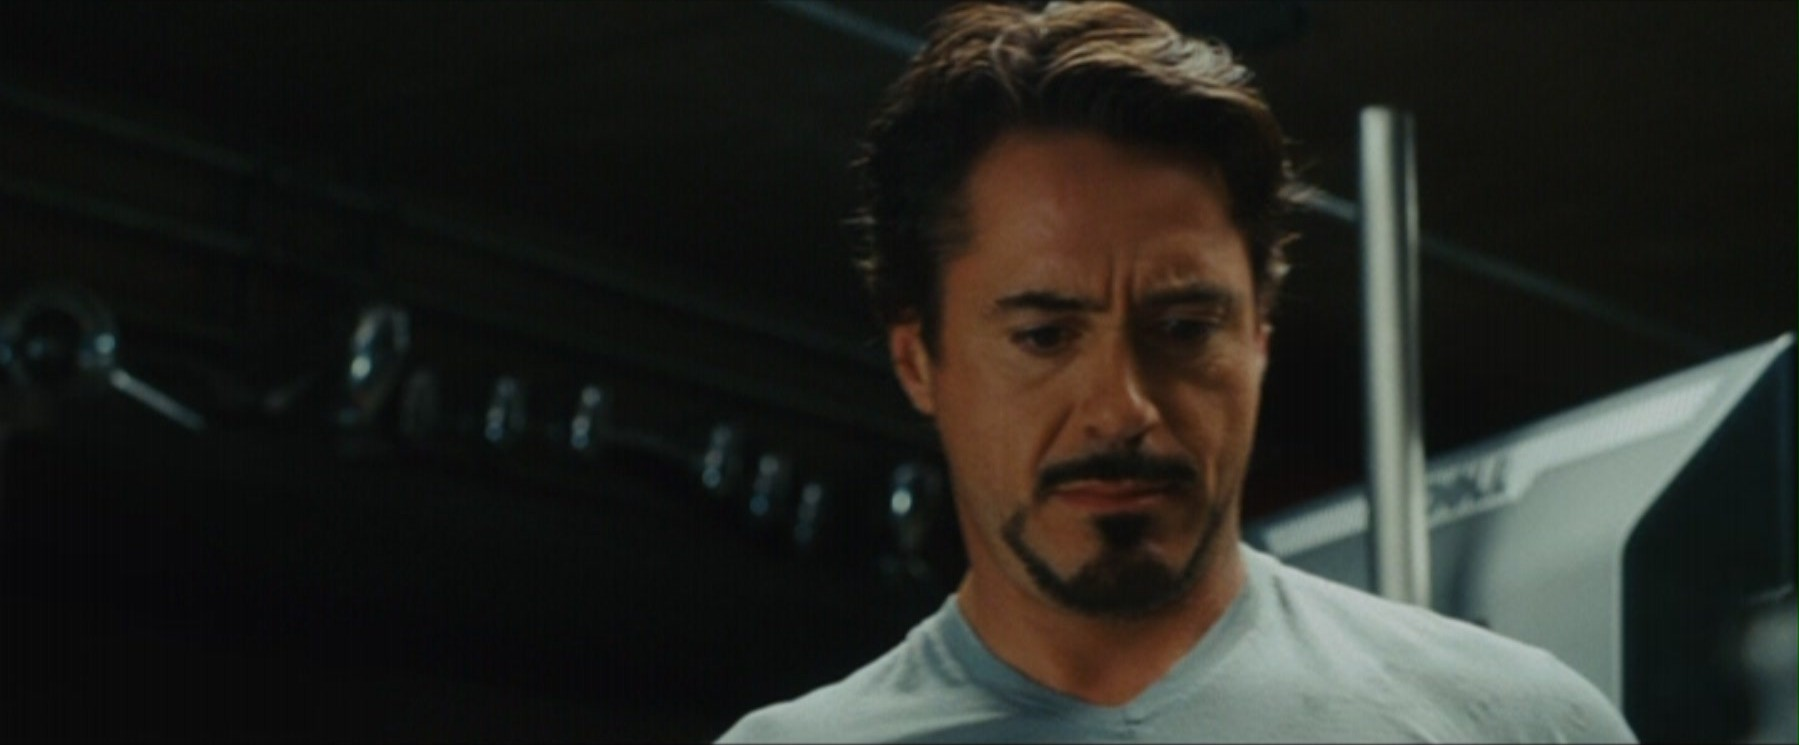 tony stark images hd - photo #8